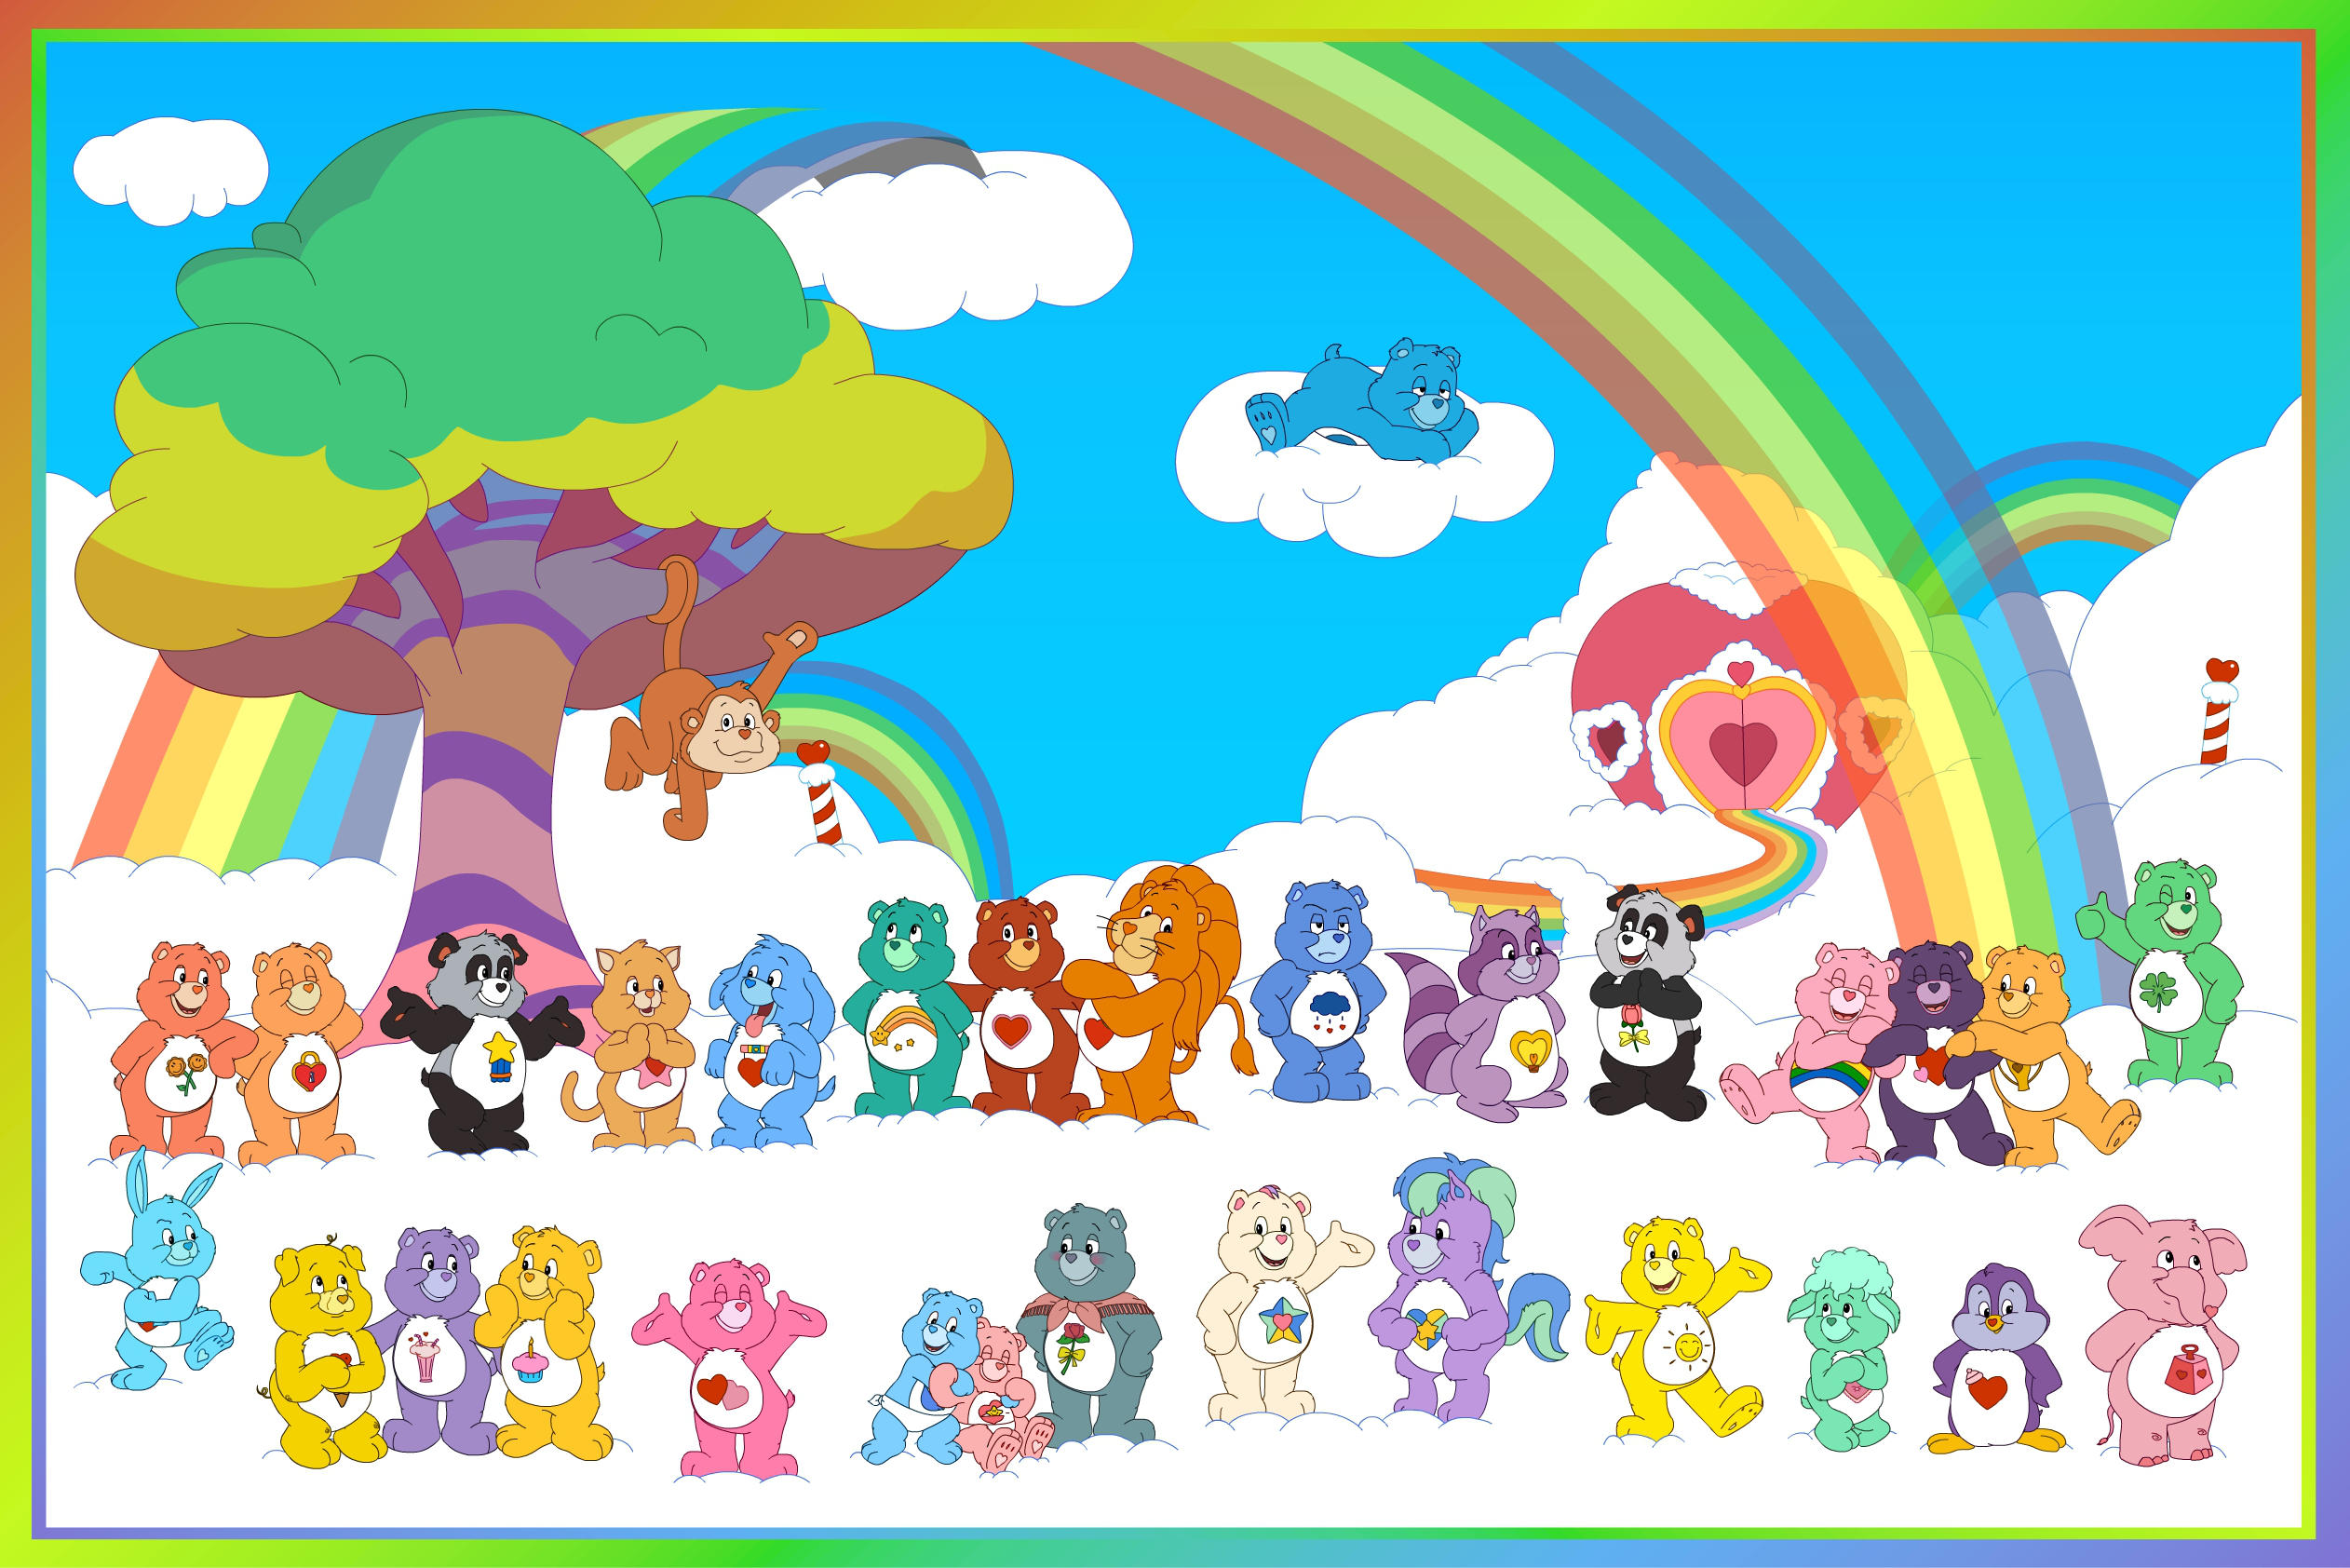 In That Care Bear Family By Theoctagon0 On Deviantart